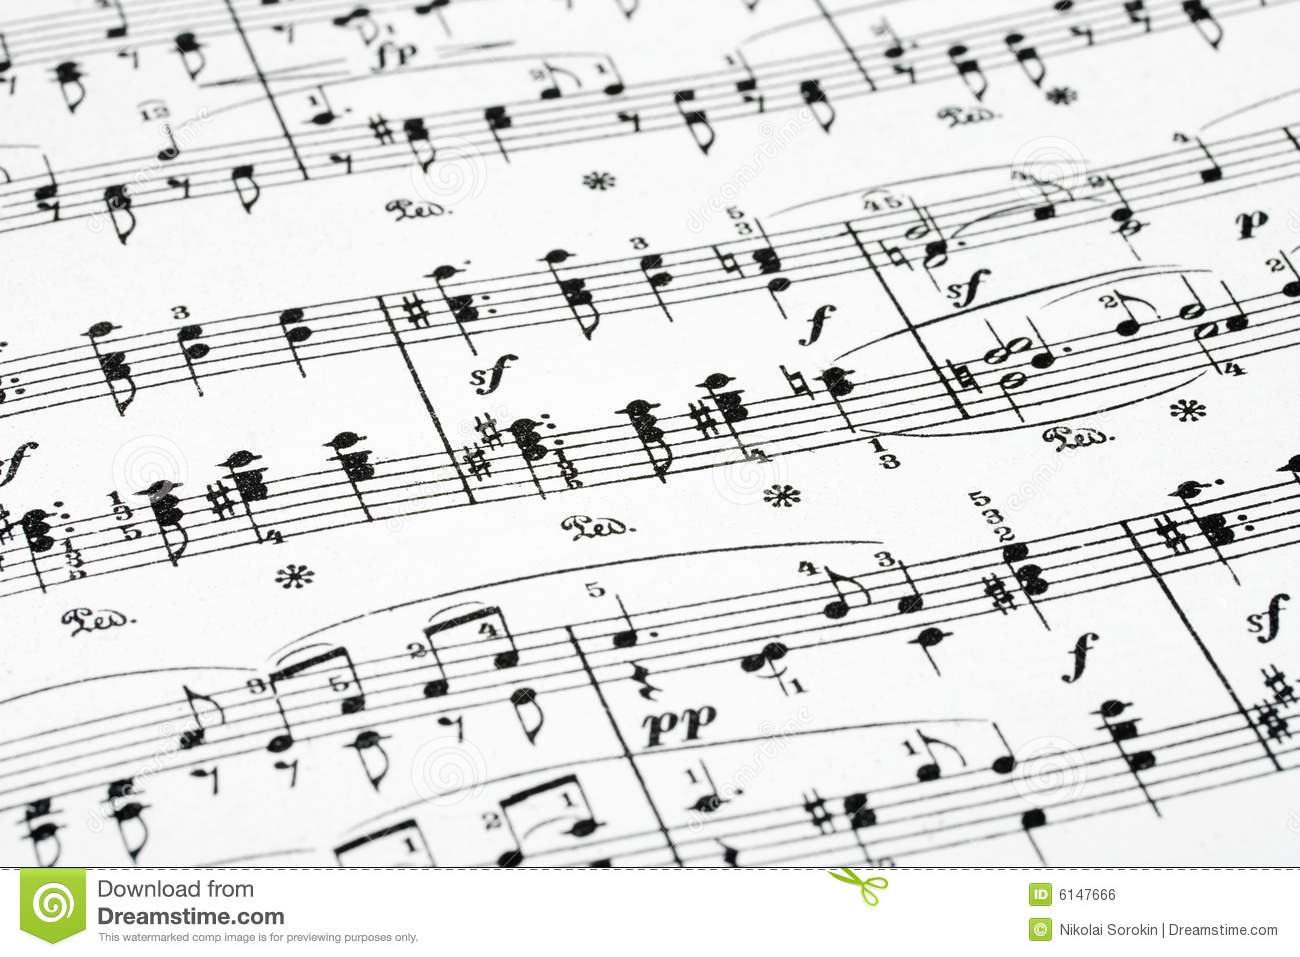 Sheet Music Plus takes music very seriously. It's the world's largest seller of sheet music, with more than 1 million pieces available online in both digital and physical versions.